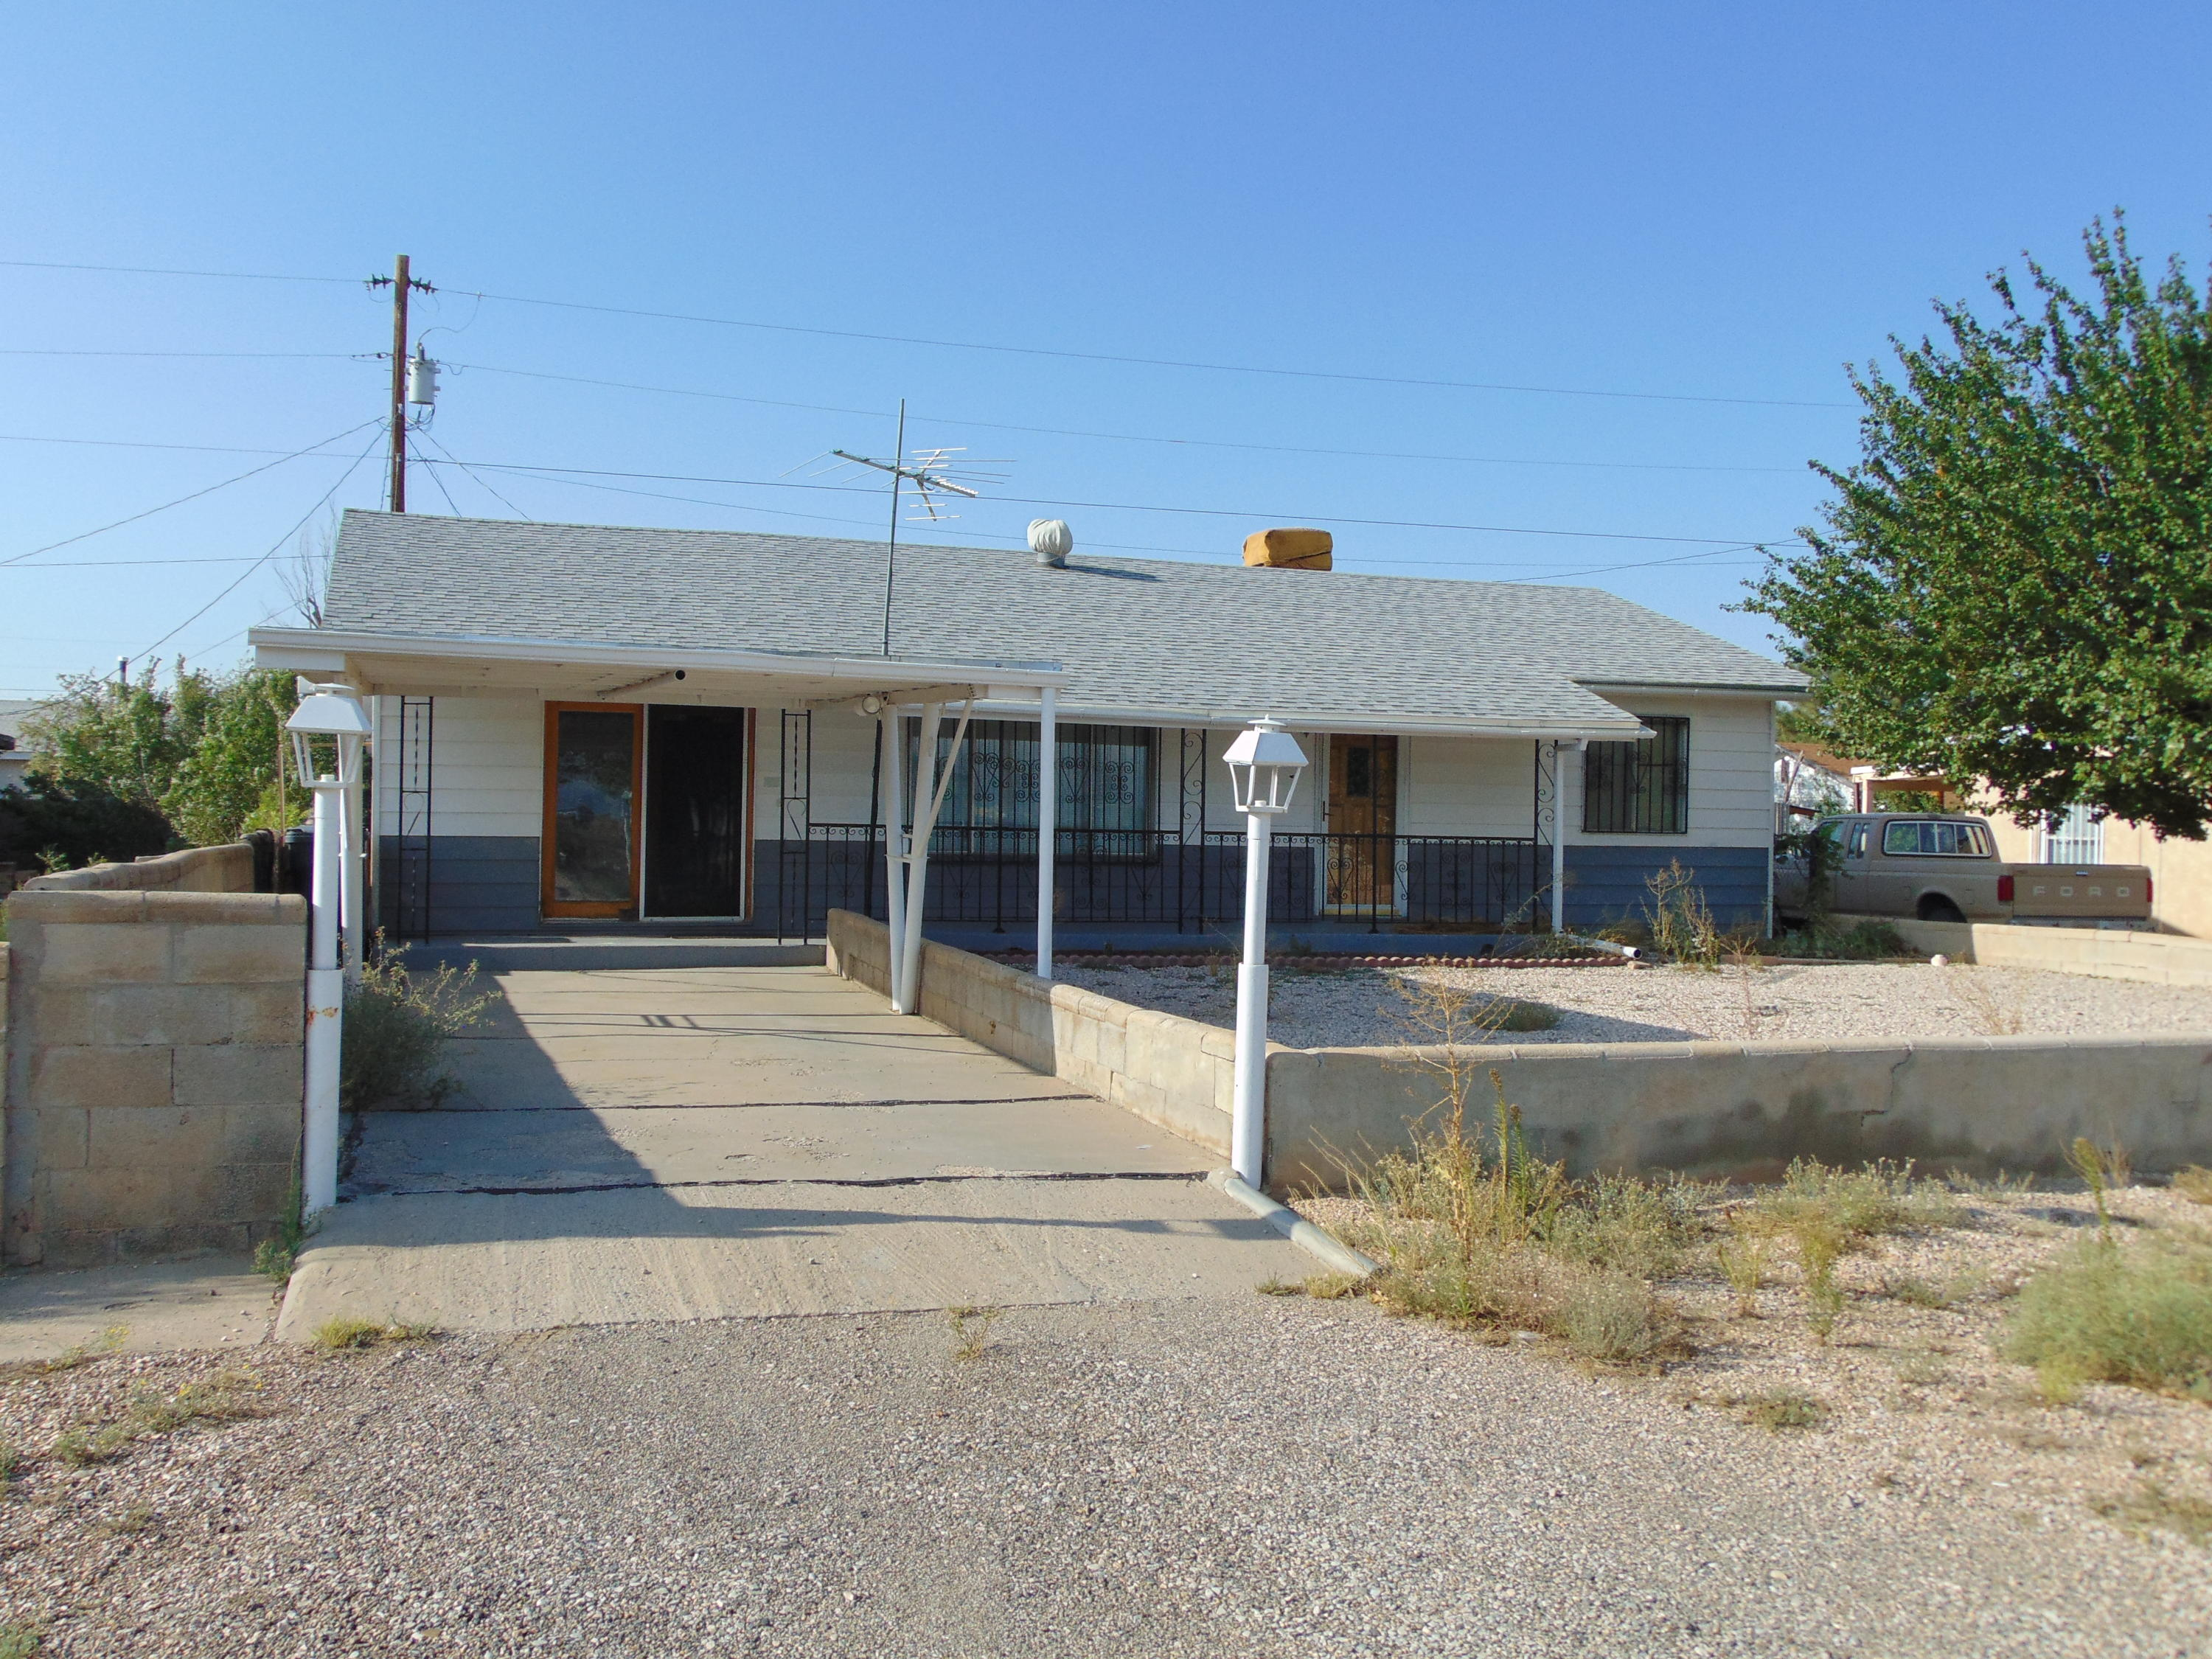 300 ARCHER Street Property Photo - Grants, NM real estate listing